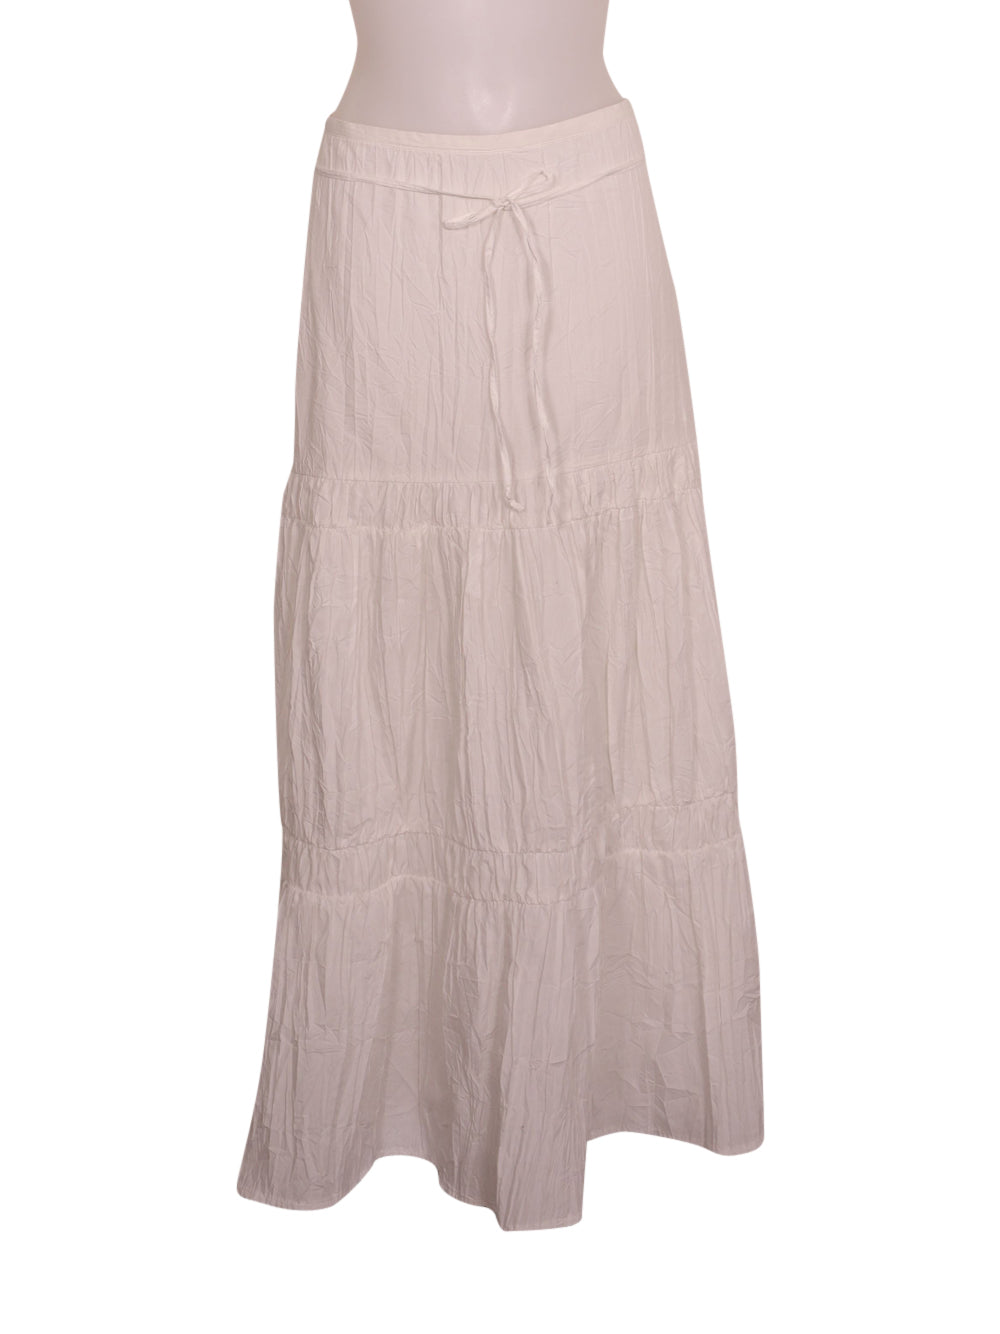 Front photo of Preloved Oltre White Woman's skirt - size 10/M